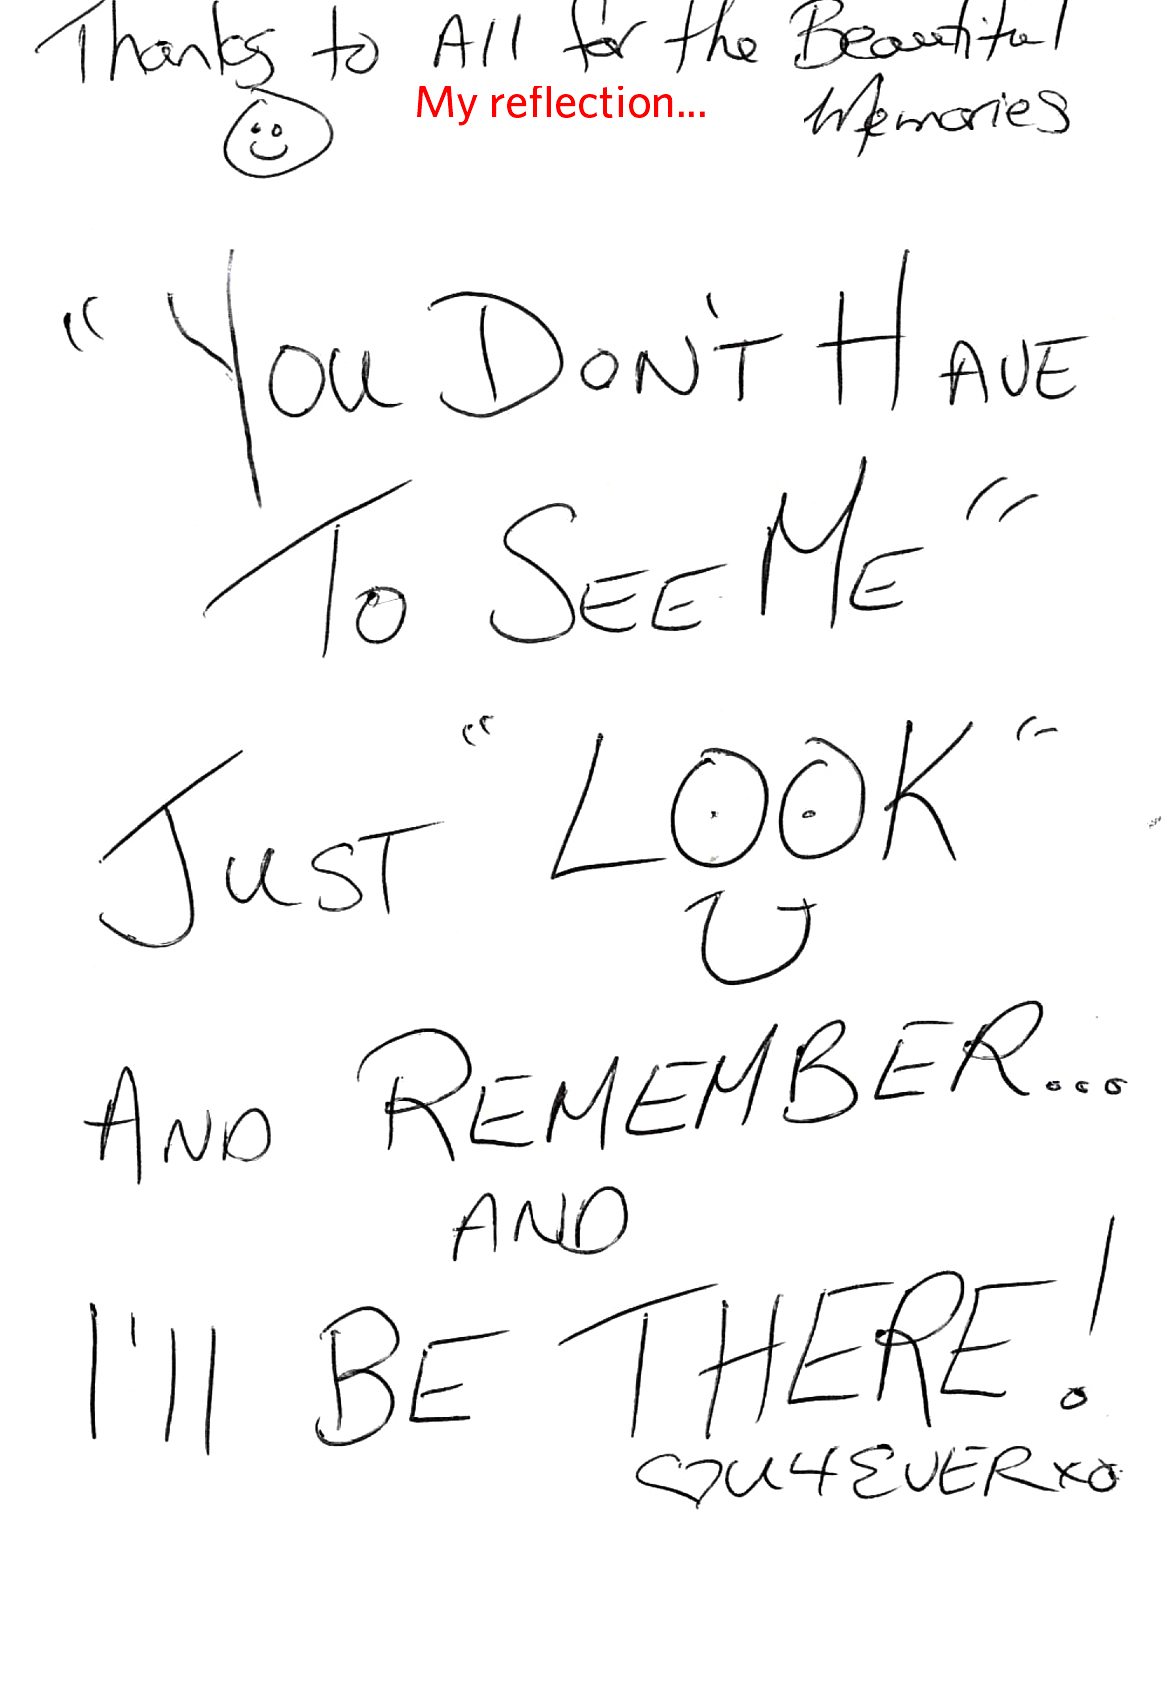 Just look and remember